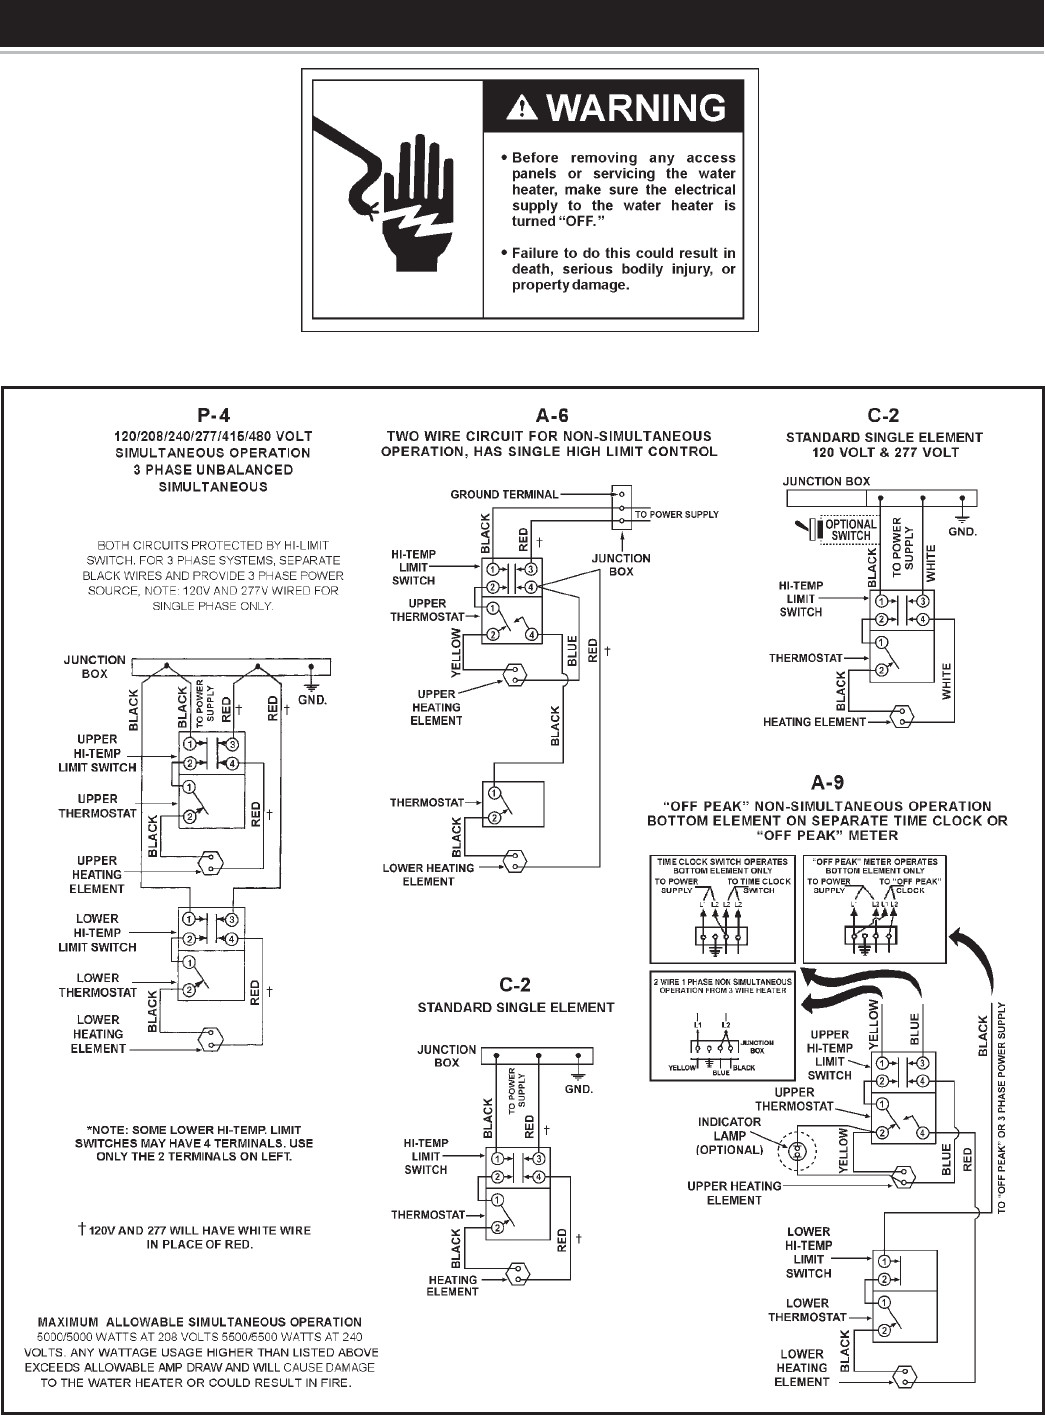 LL_9277] Ao Smith Motor Wiring Diagram Download DiagramPapxe Arcin Benkeme Mohammedshrine Librar Wiring 101